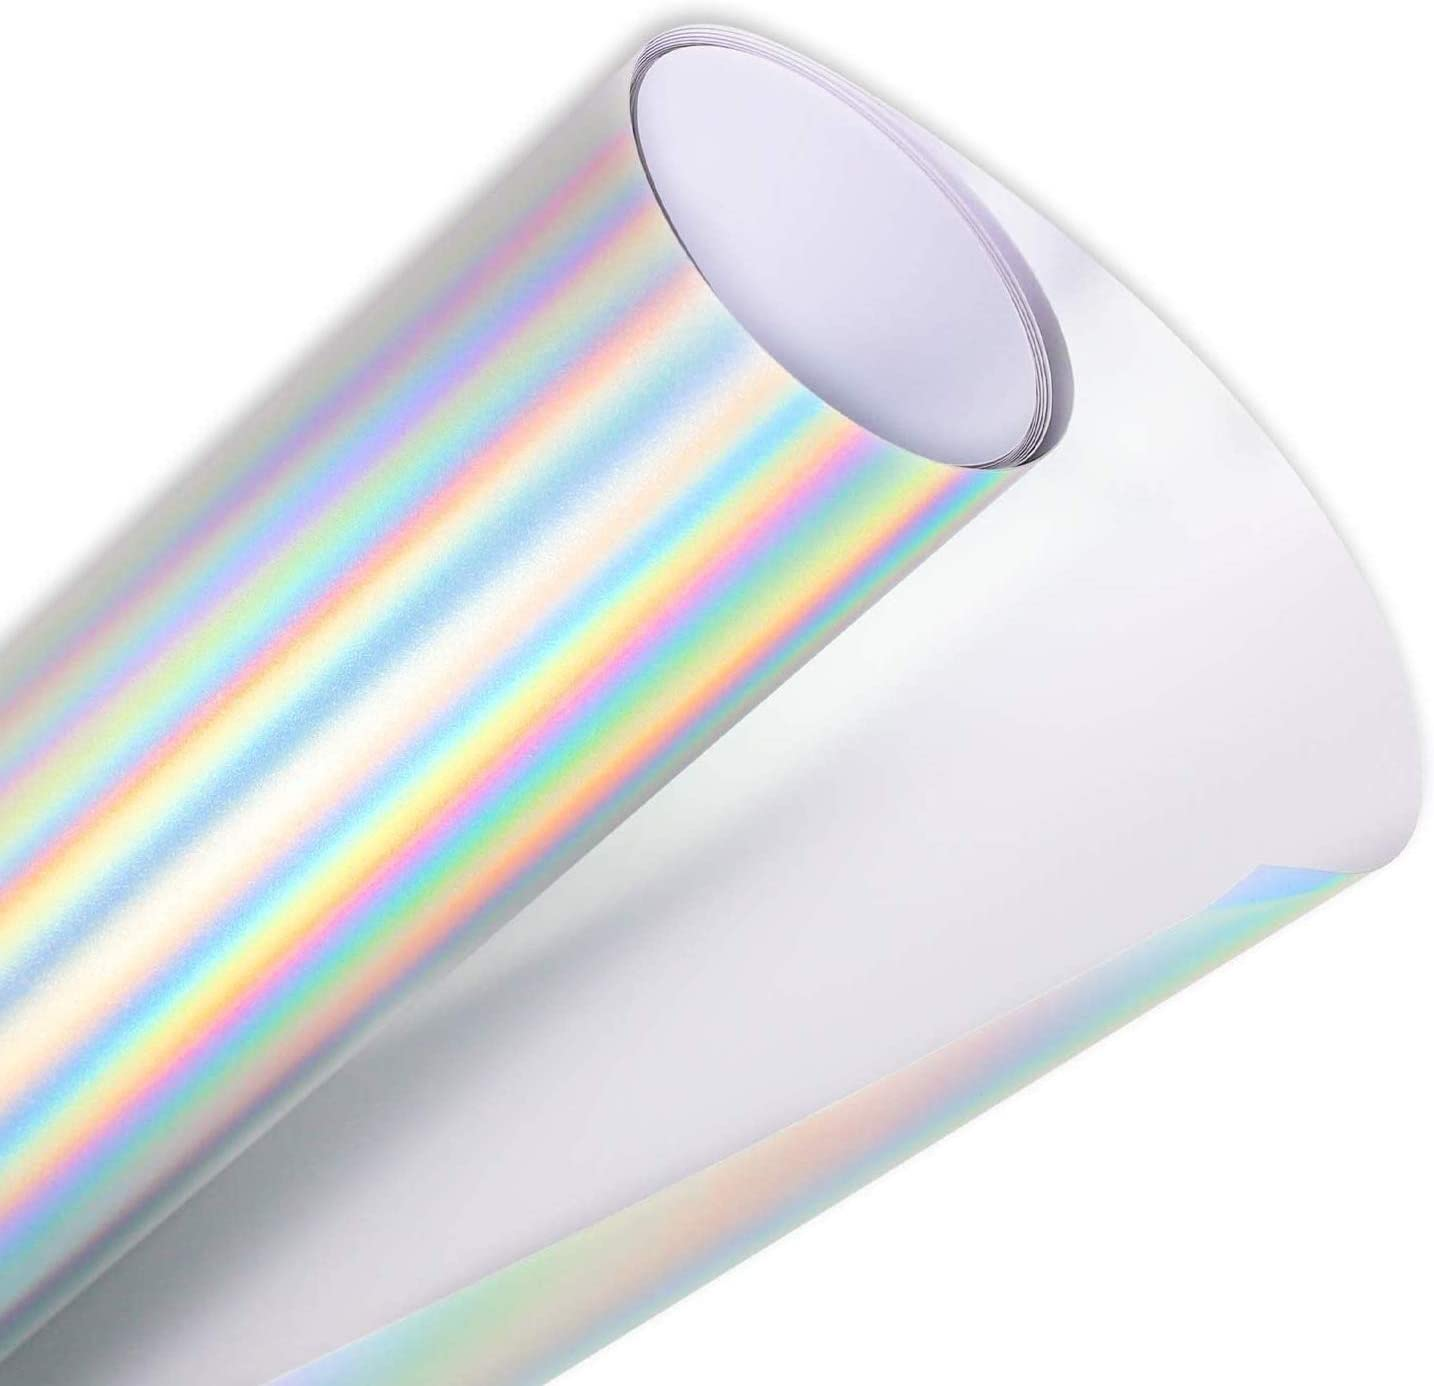 JH BEST CRAFTS Holographic Silver Chrome Adhesive Vinyl for Home Decor, Wall Decal, Windows, Signs, Logo, Car Exterior (12